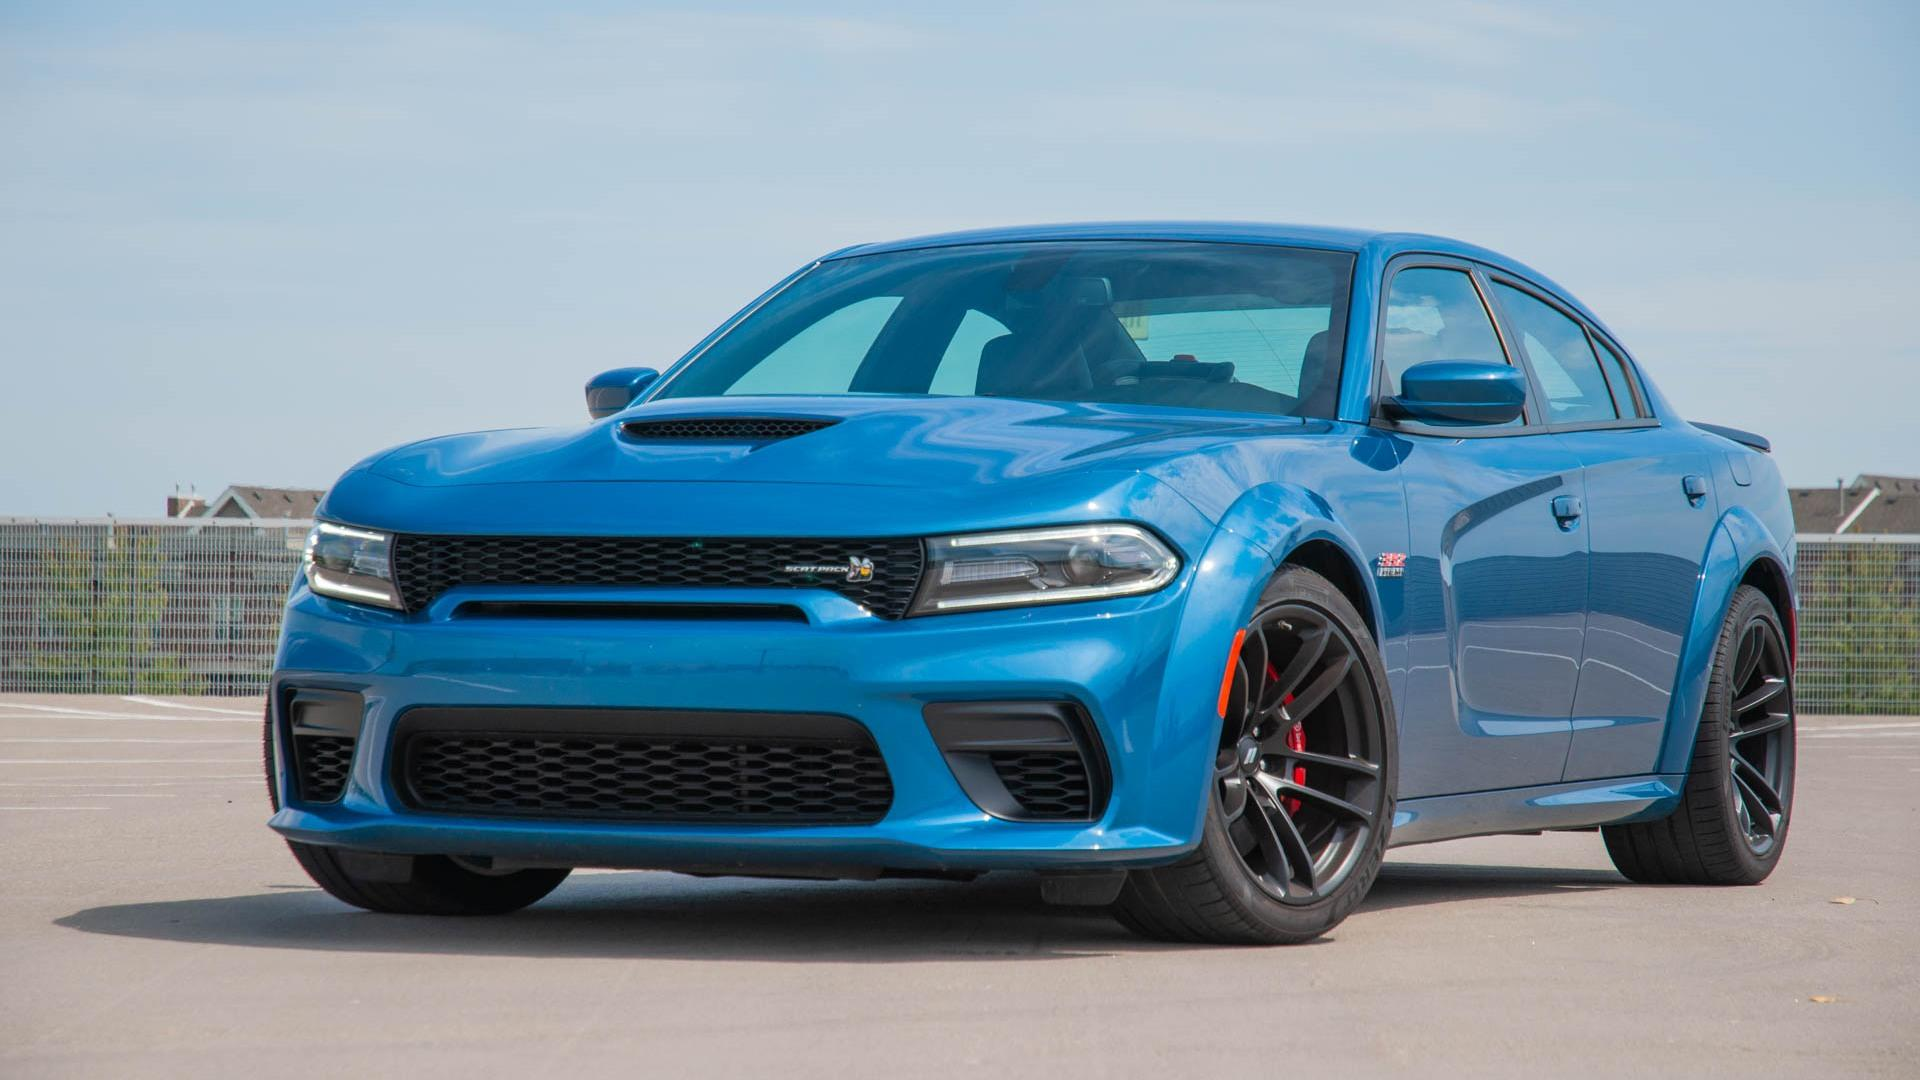 2020 dodge charger scat pack widebody 100765133